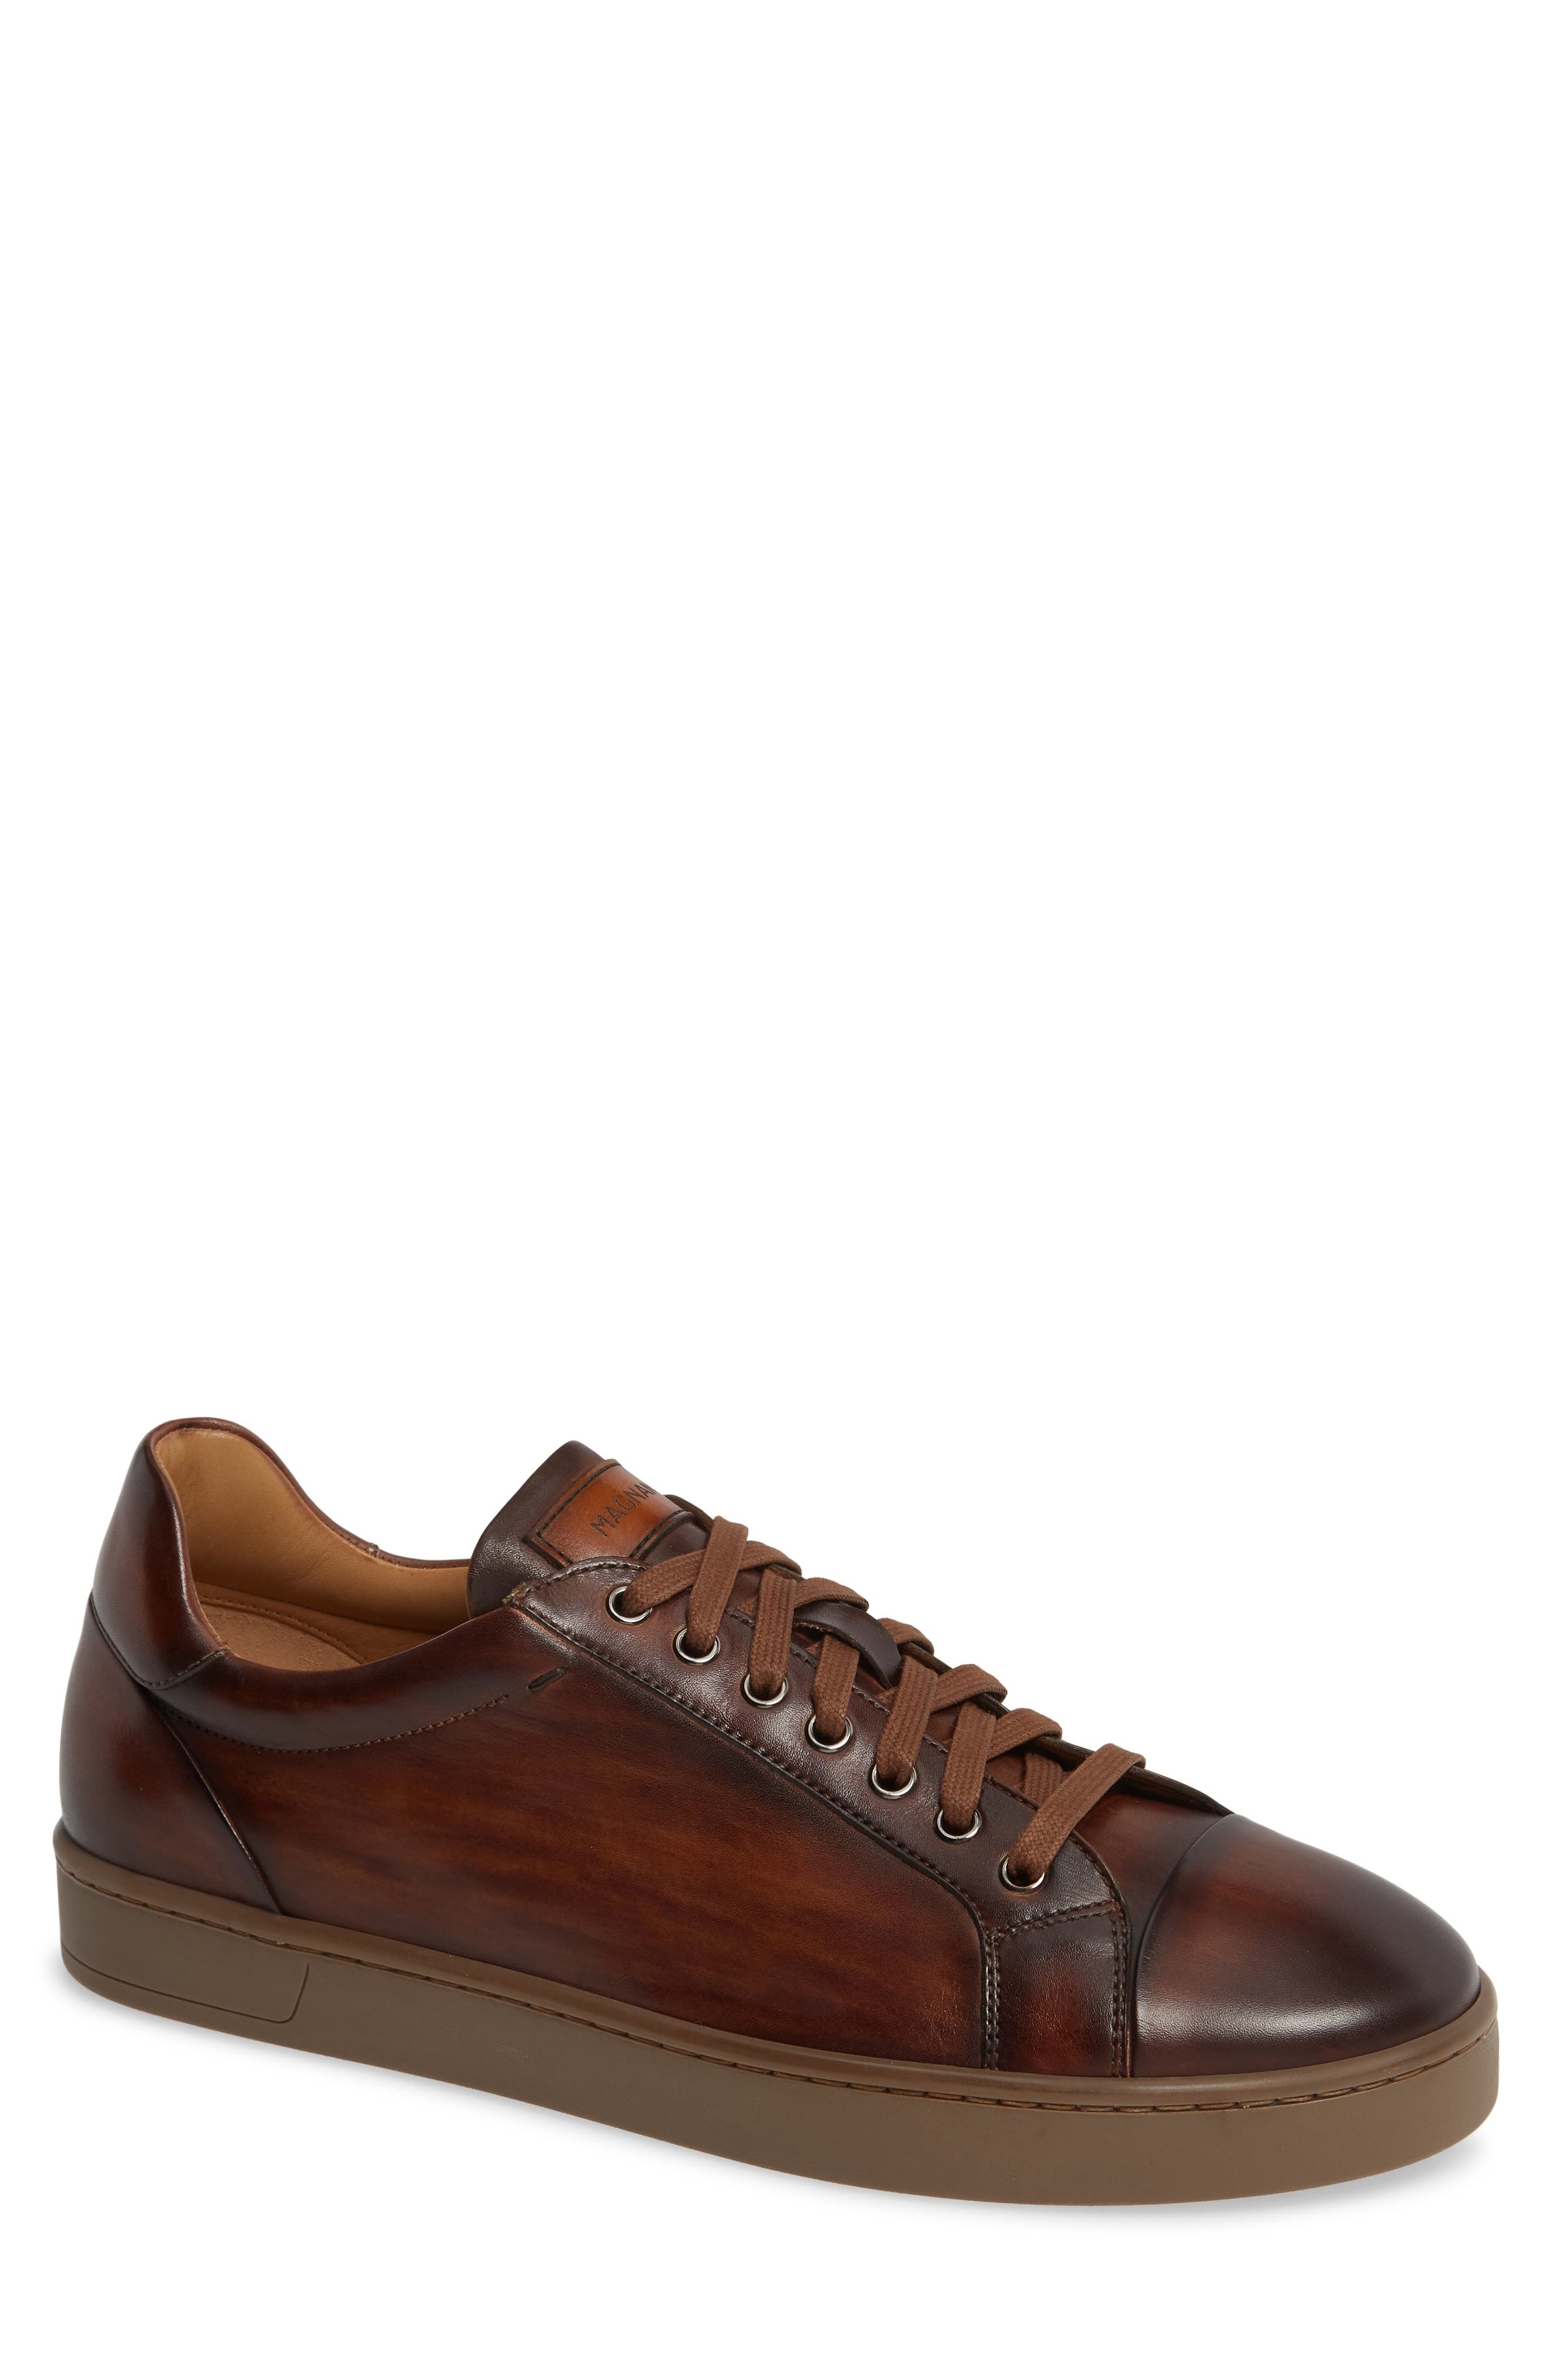 Caitin Sneaker,                         Main,                         color, TABACO LEATHER